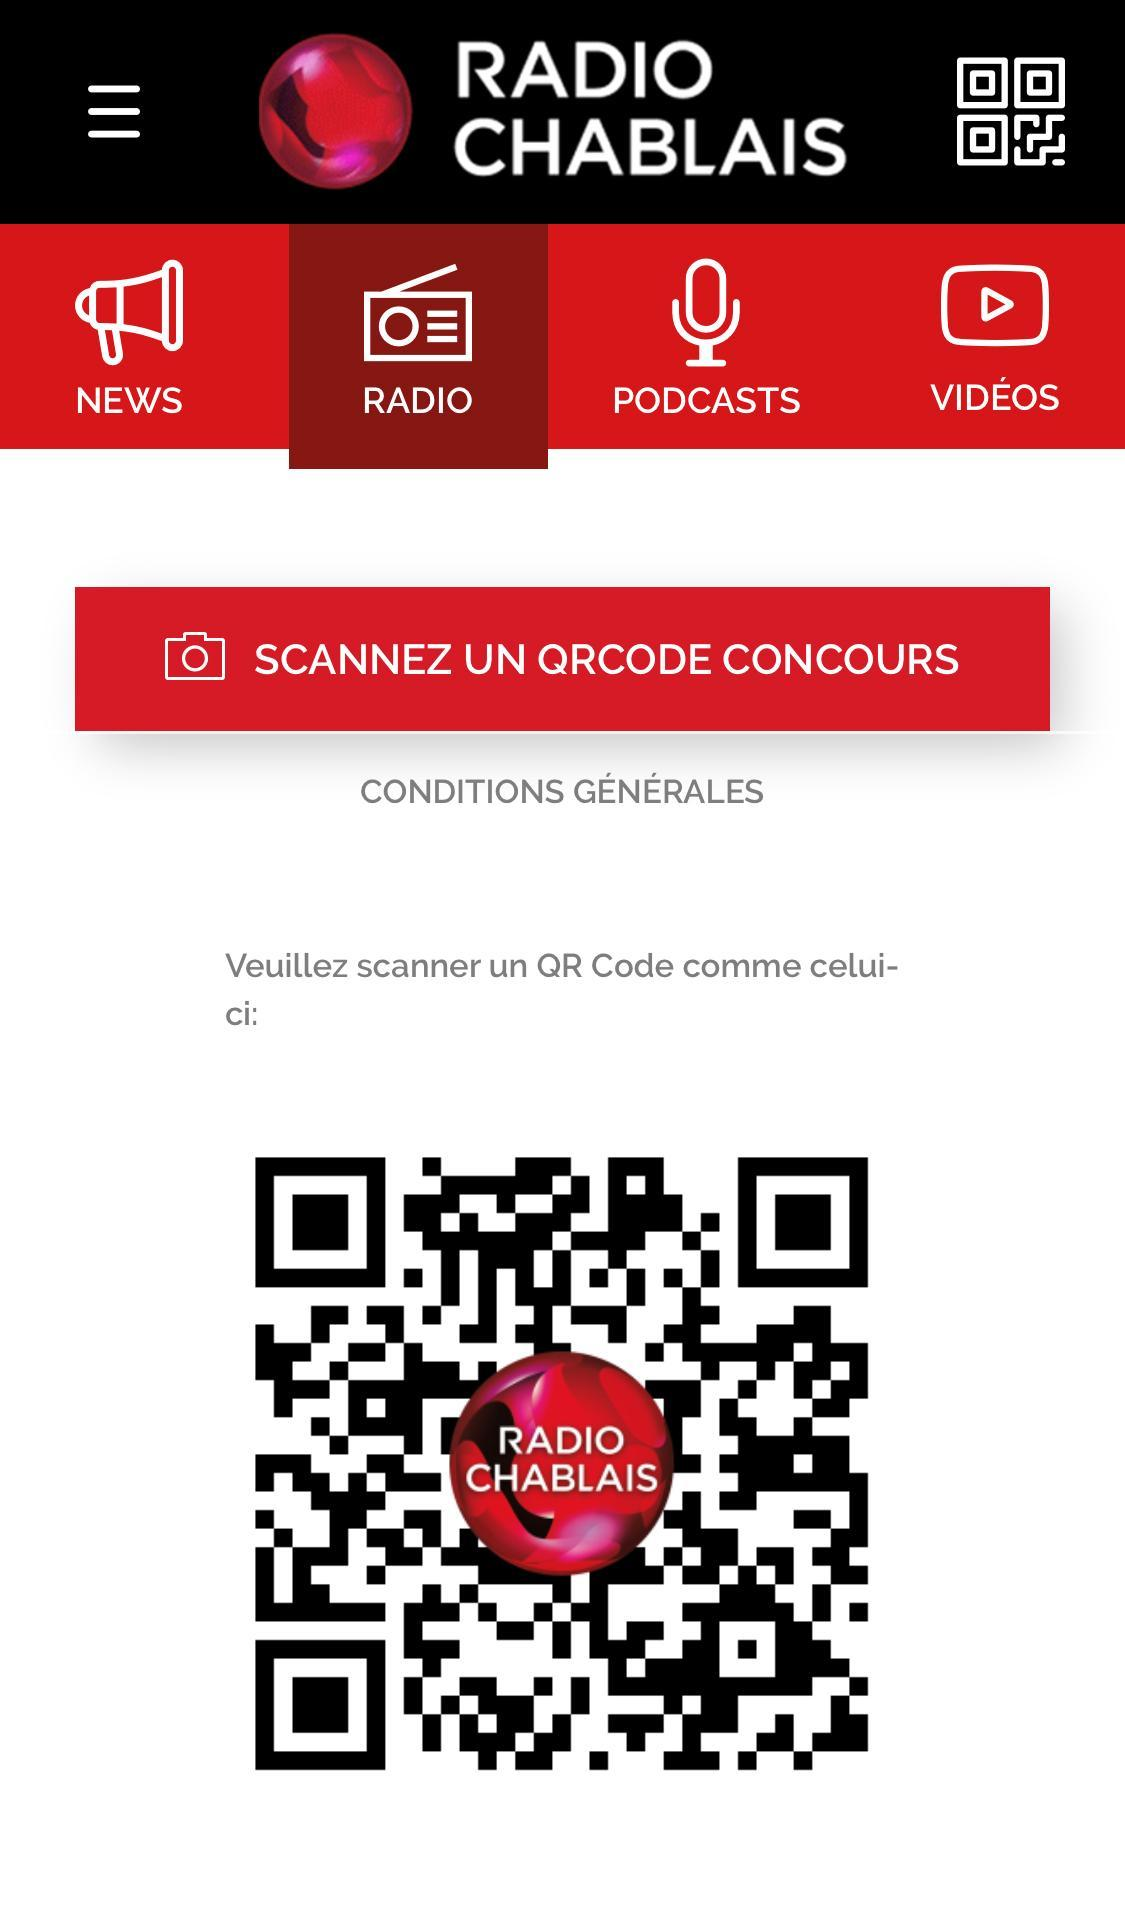 Radio Chablais for Android - APK Download